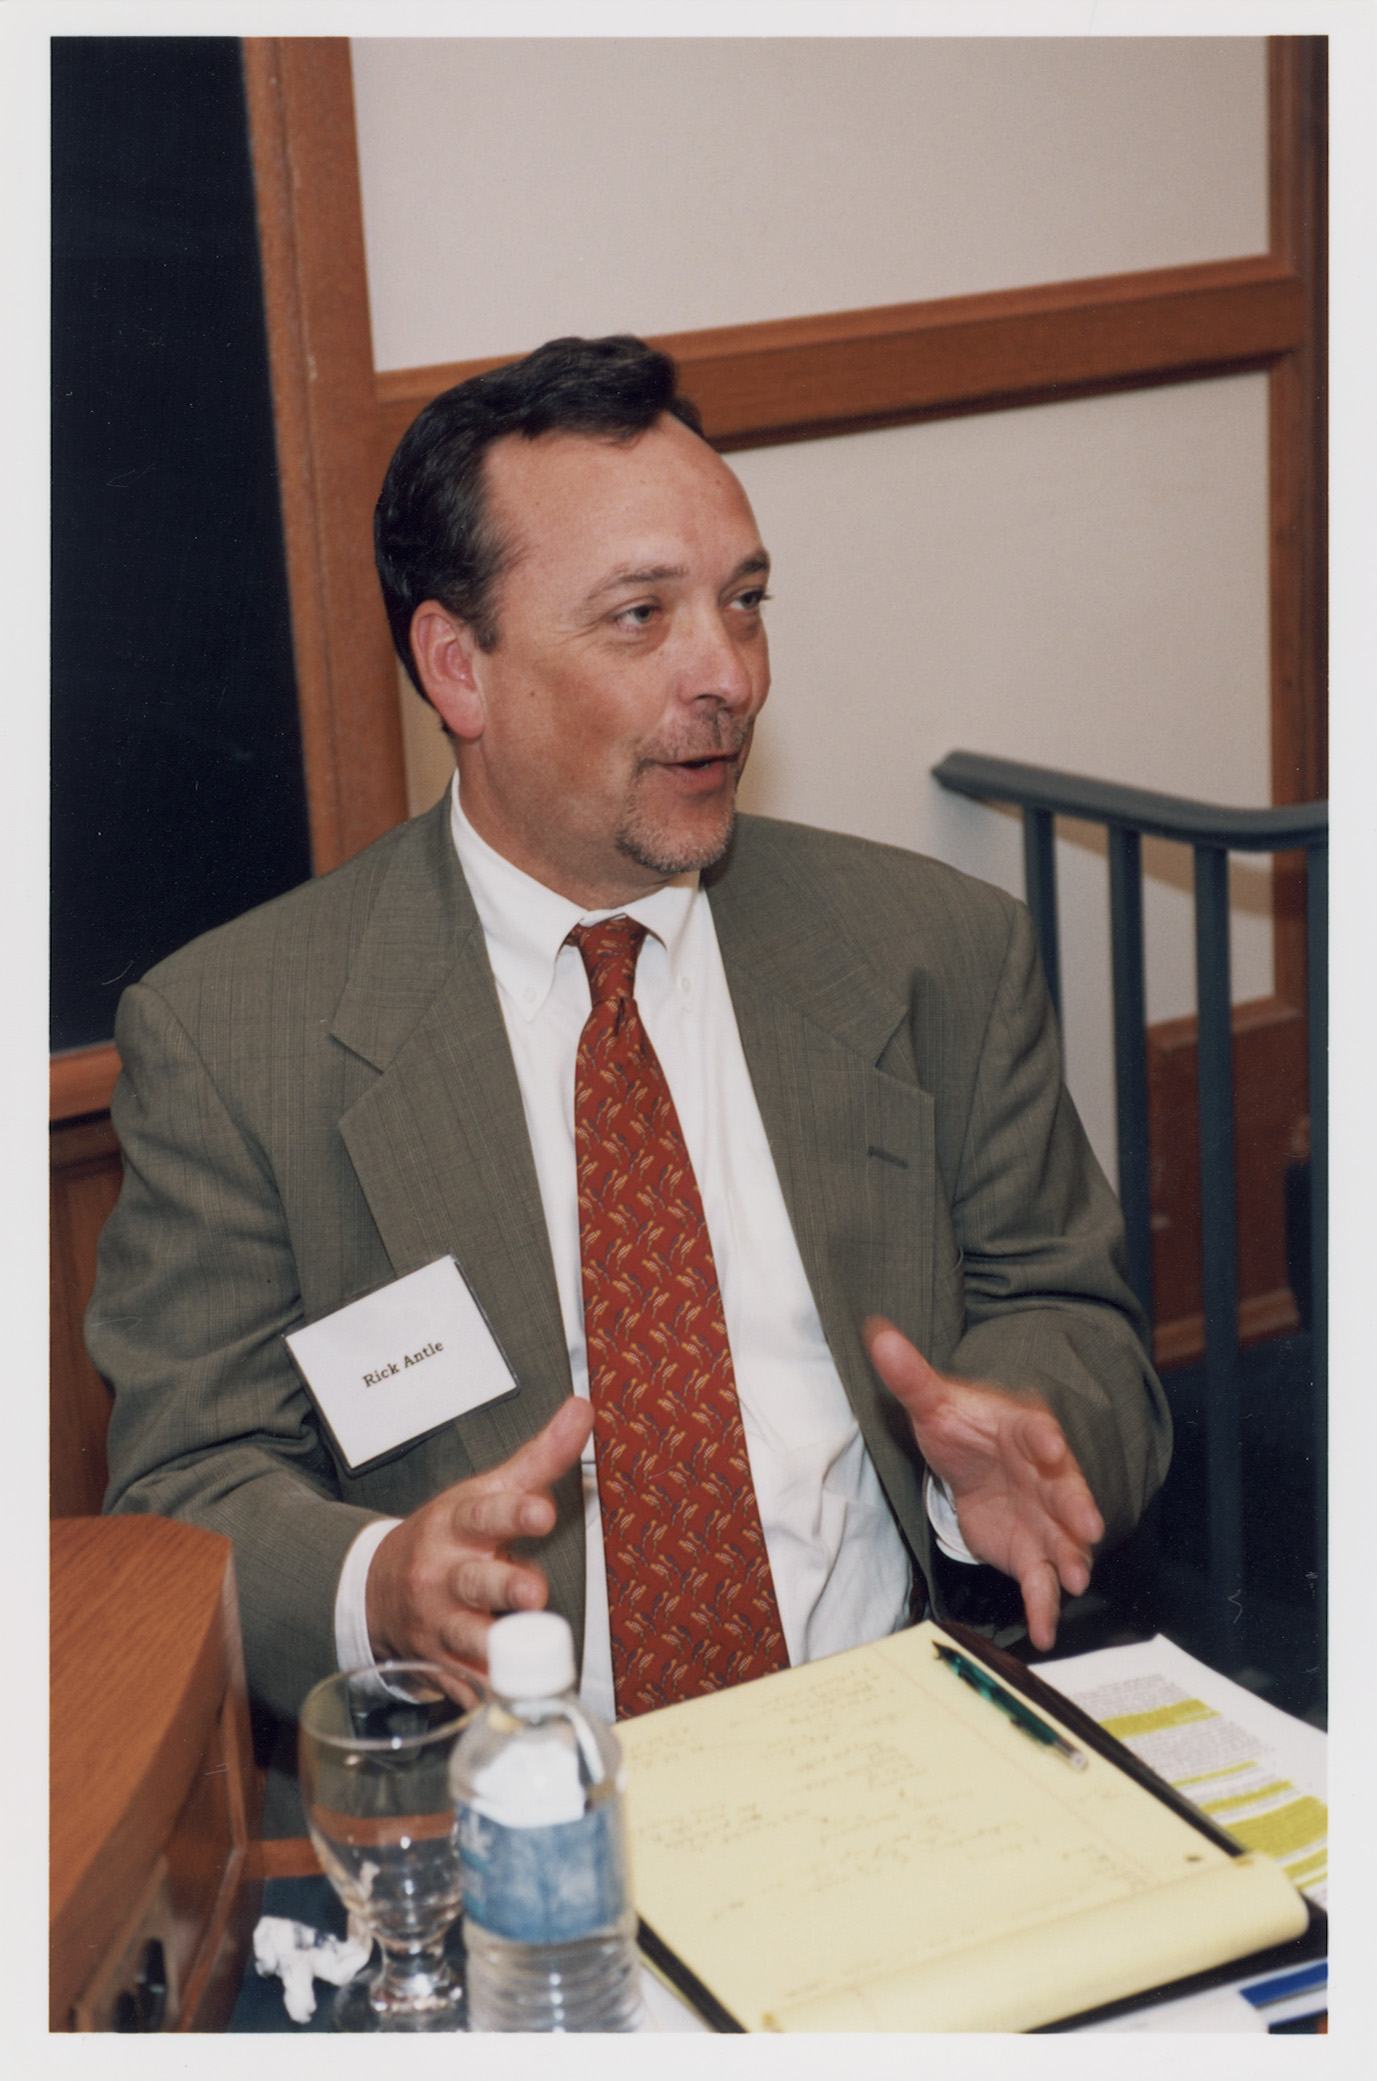 Yale SOM Associate Dean and Prof. Rick Antle